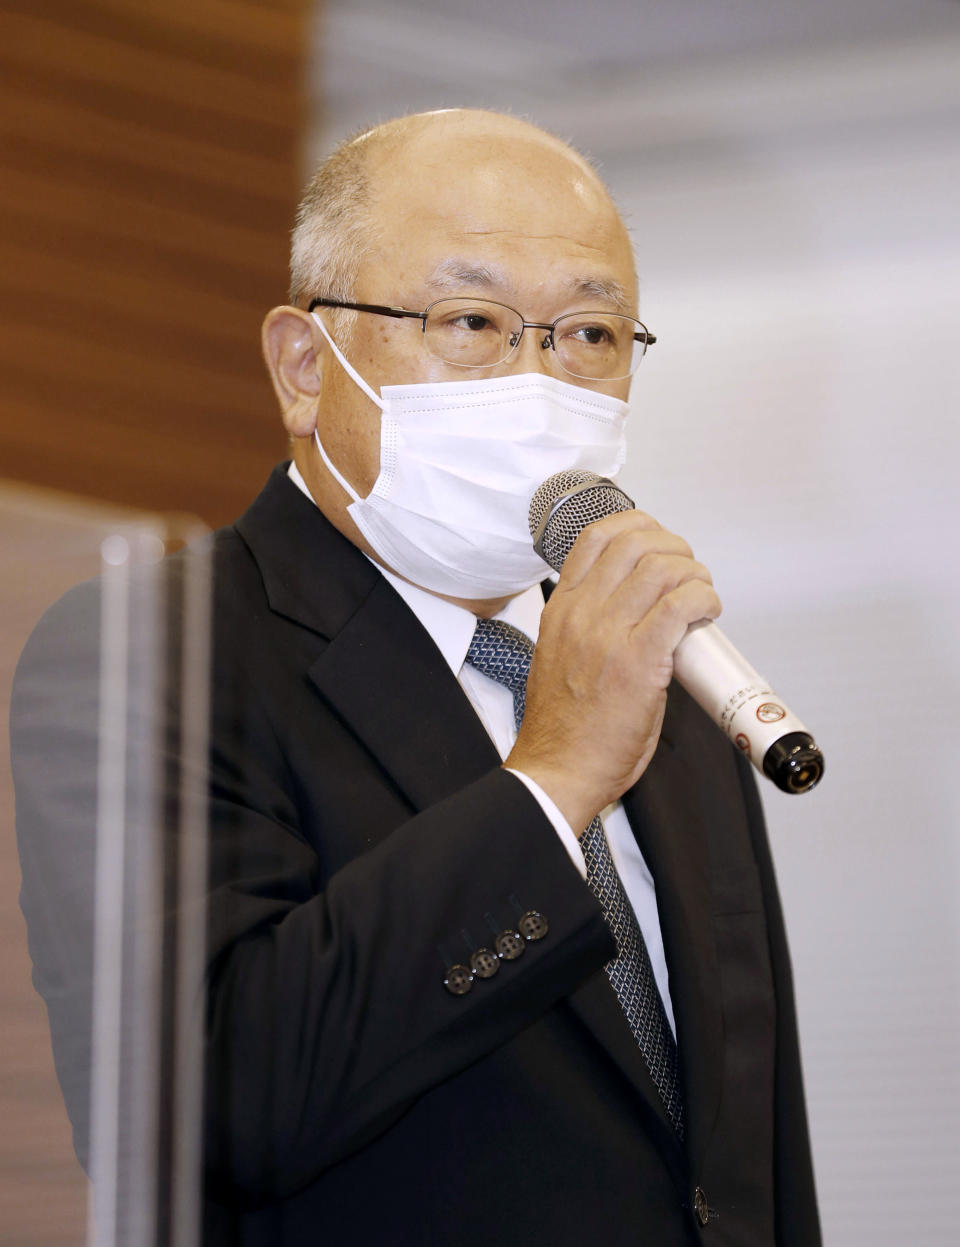 Mitsui O.S.K.Lines Representative Director Akihiko Ono speaks during a press conference in Tokyo, Sunday, Aug. 9, 2020. The owners and operators of the grounded ship Wakashio on Sunday apologized for the accident that has led to tons of fuel leaking into Mauritius waters. (Kyodo News via AP)